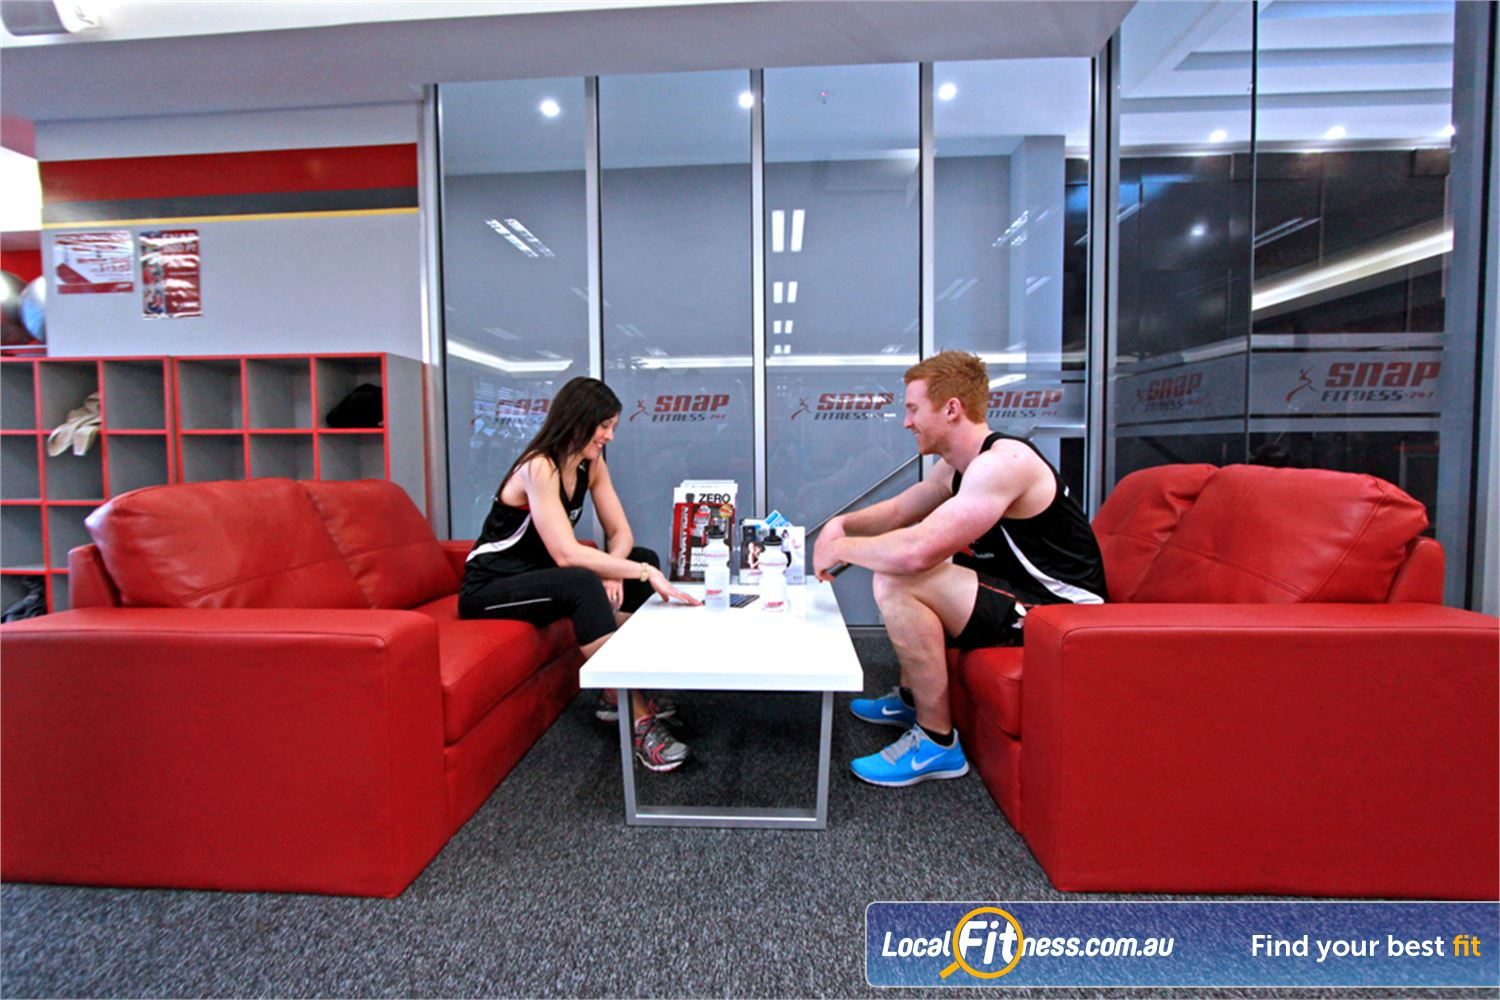 Snap Fitness Near Kilsyth Enjoy 24 hour comfort in our members lounge.